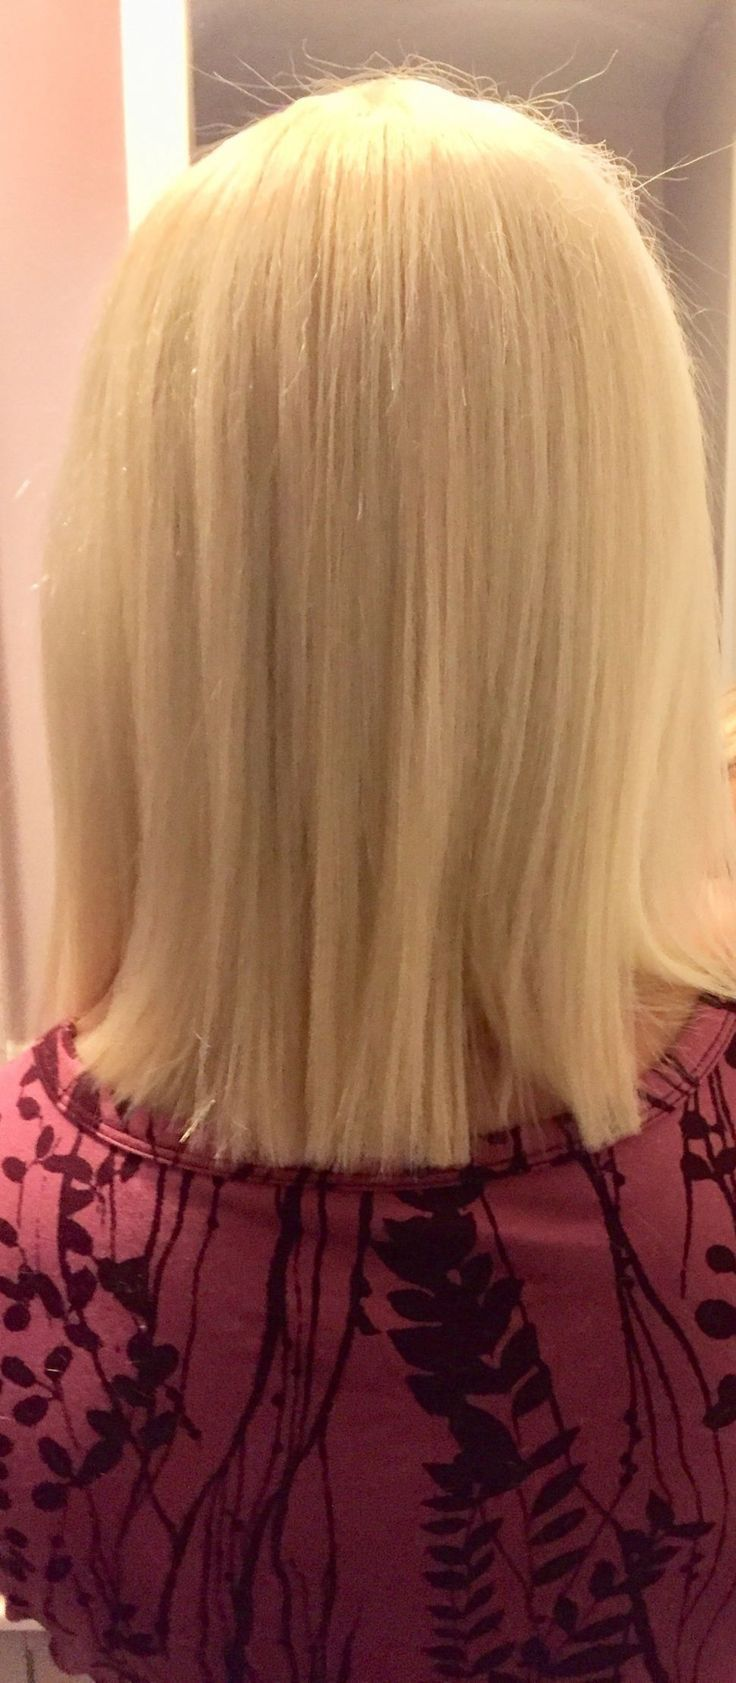 #Blonde #Hairstyles #Highlights #Icy #Newest #Platinum -  #blonde #hairstyles #highlights #Ic... #platinumblondehighlights